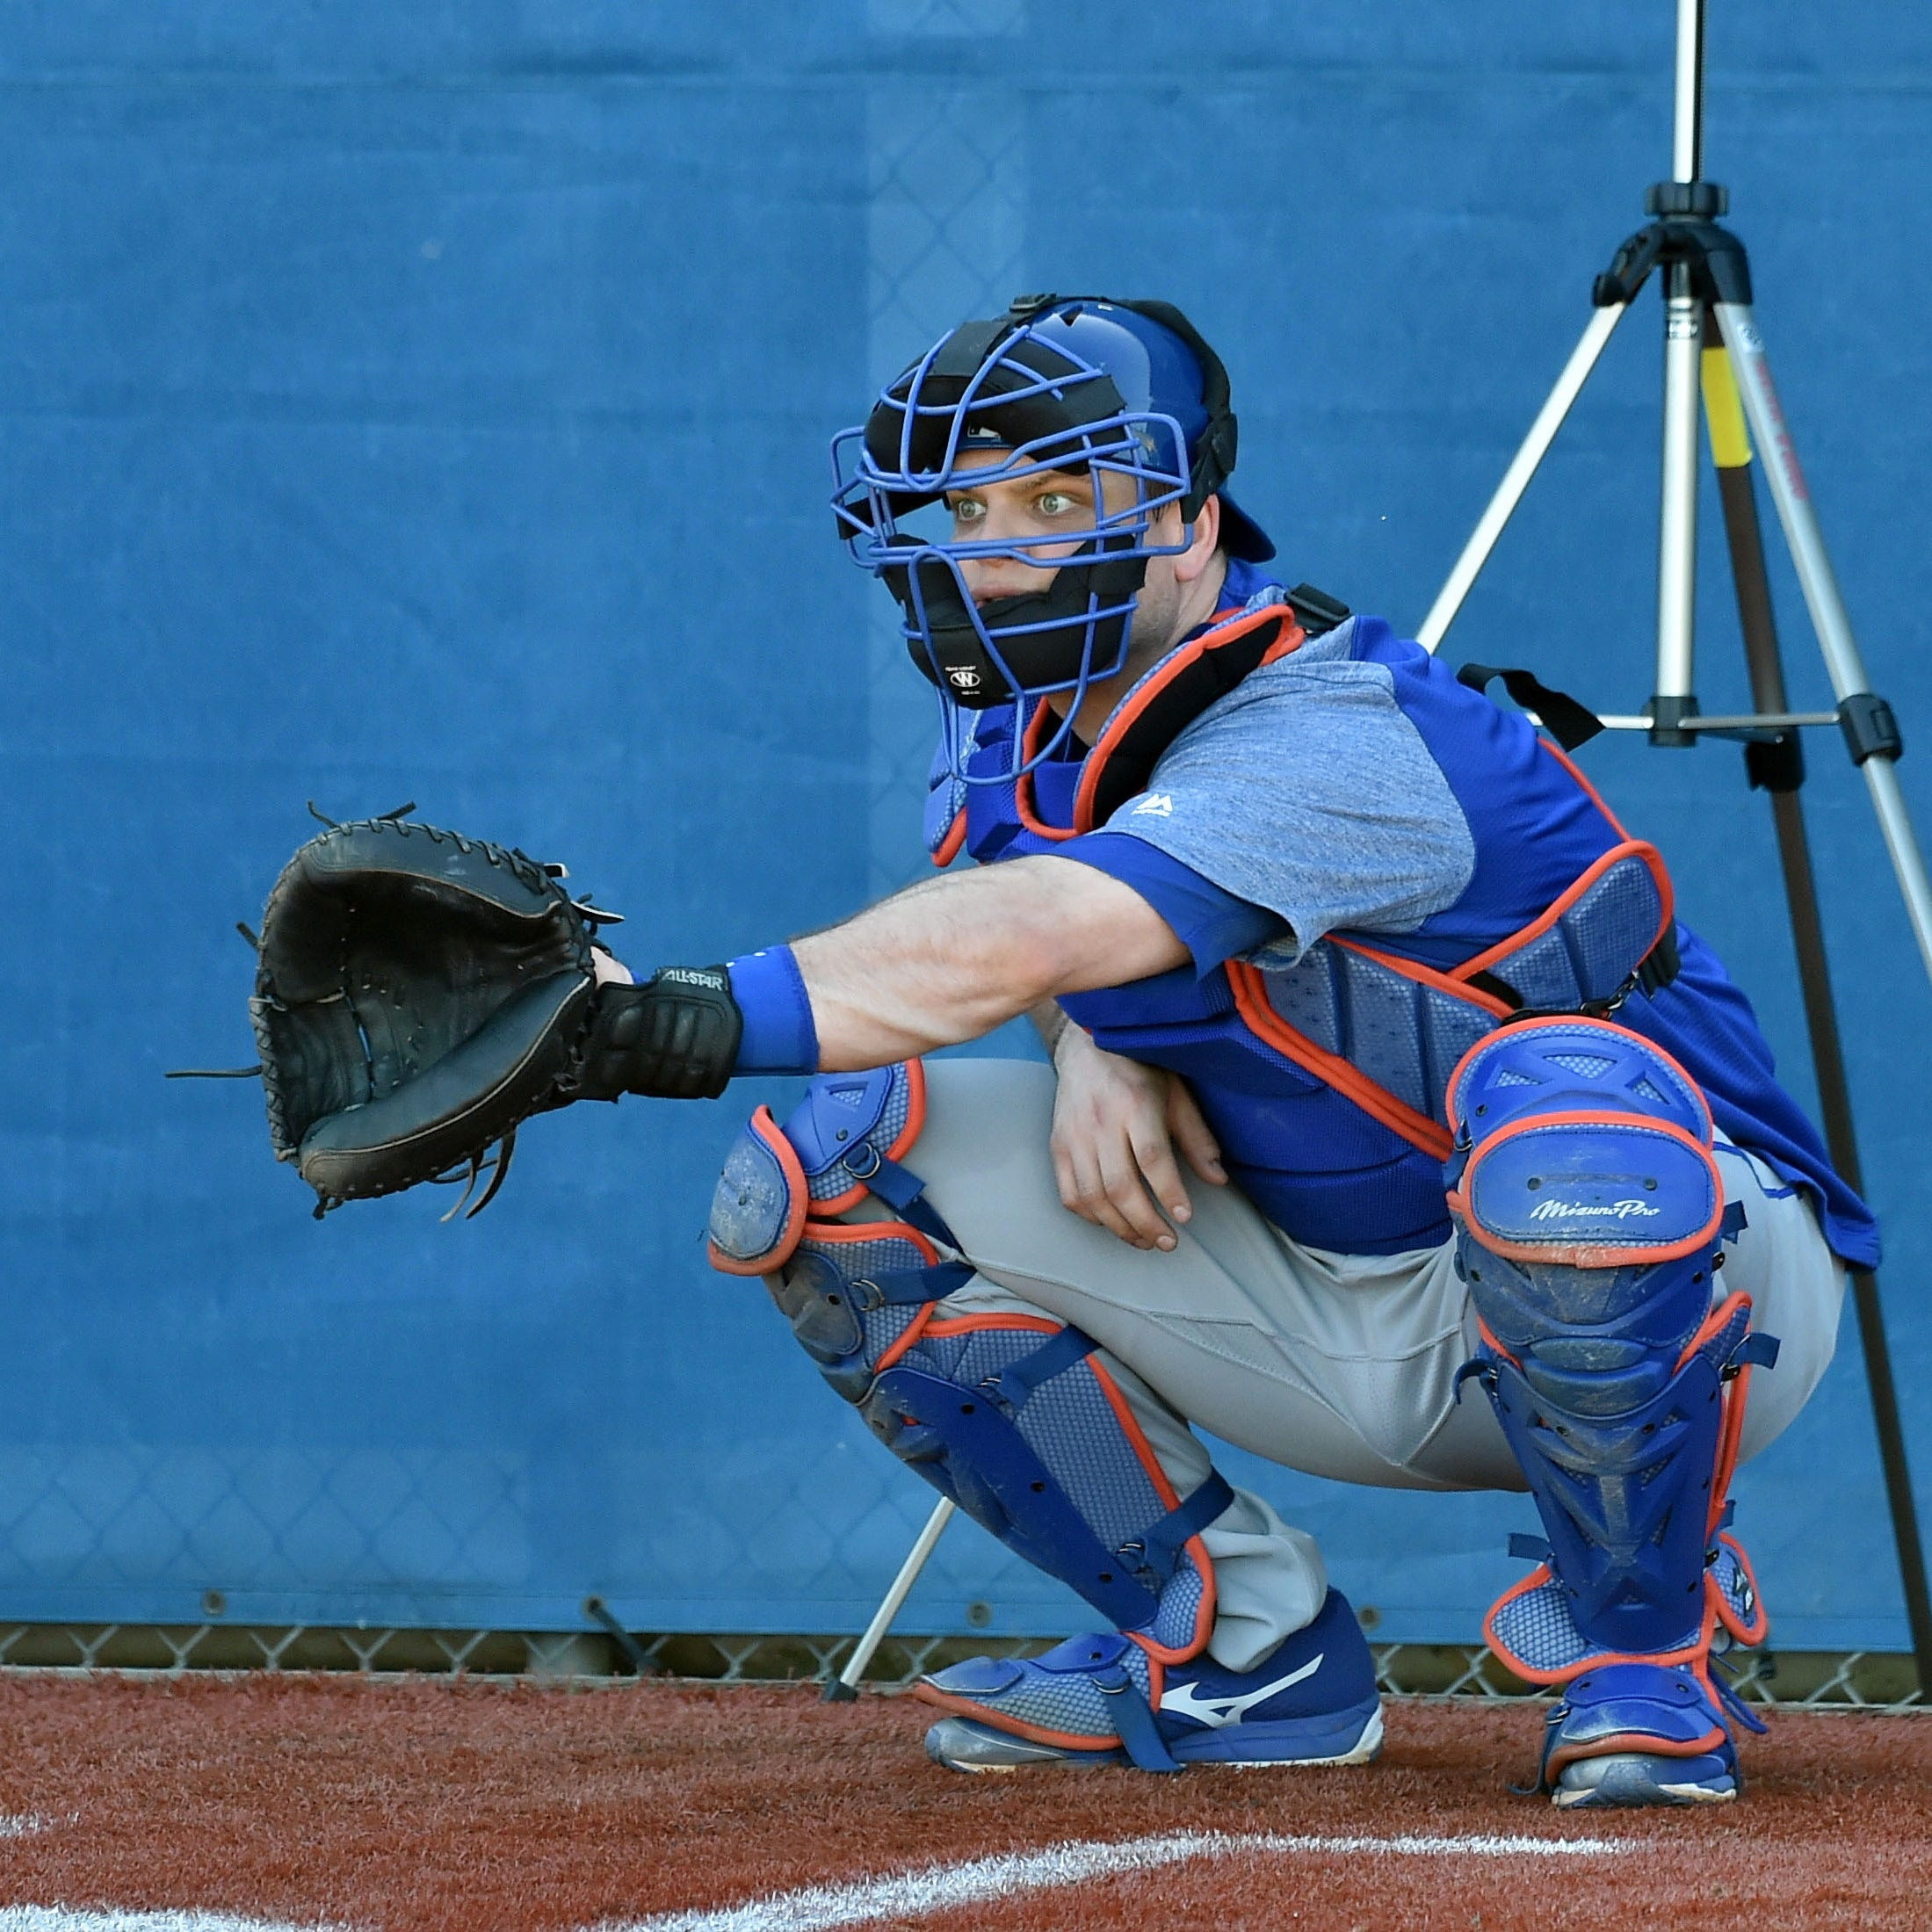 New York Mets catcher Devin Mesoraco (29) during spring training at First Data Field on Feb. 15, 2019 in Port St. Lucie, Fla.